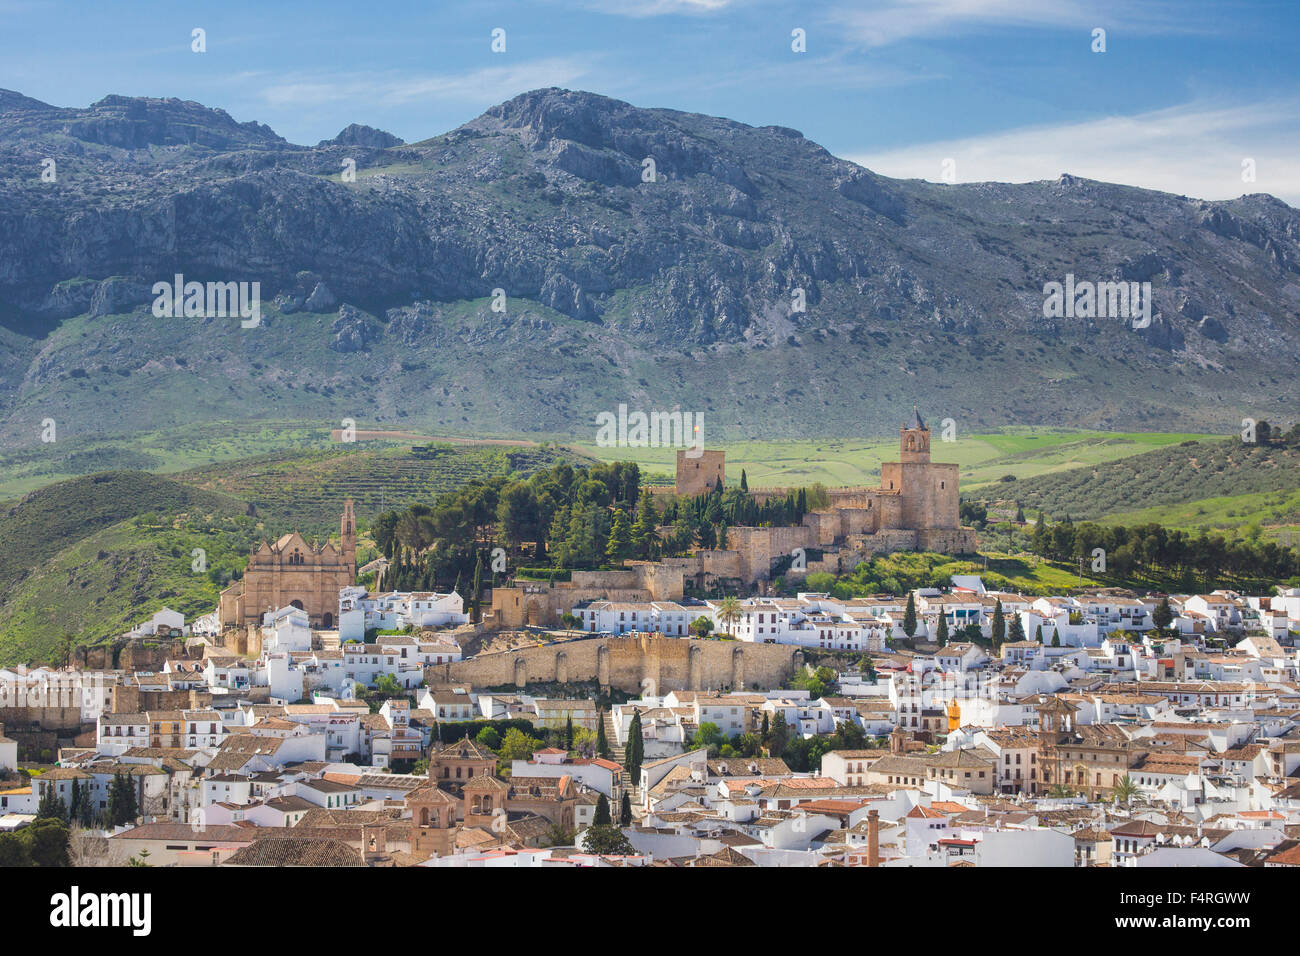 Andalusia, Antequera, town, Landscape, Malaga, Spain, Europe, Spring, architecture, castle, colourful, no people, - Stock Image